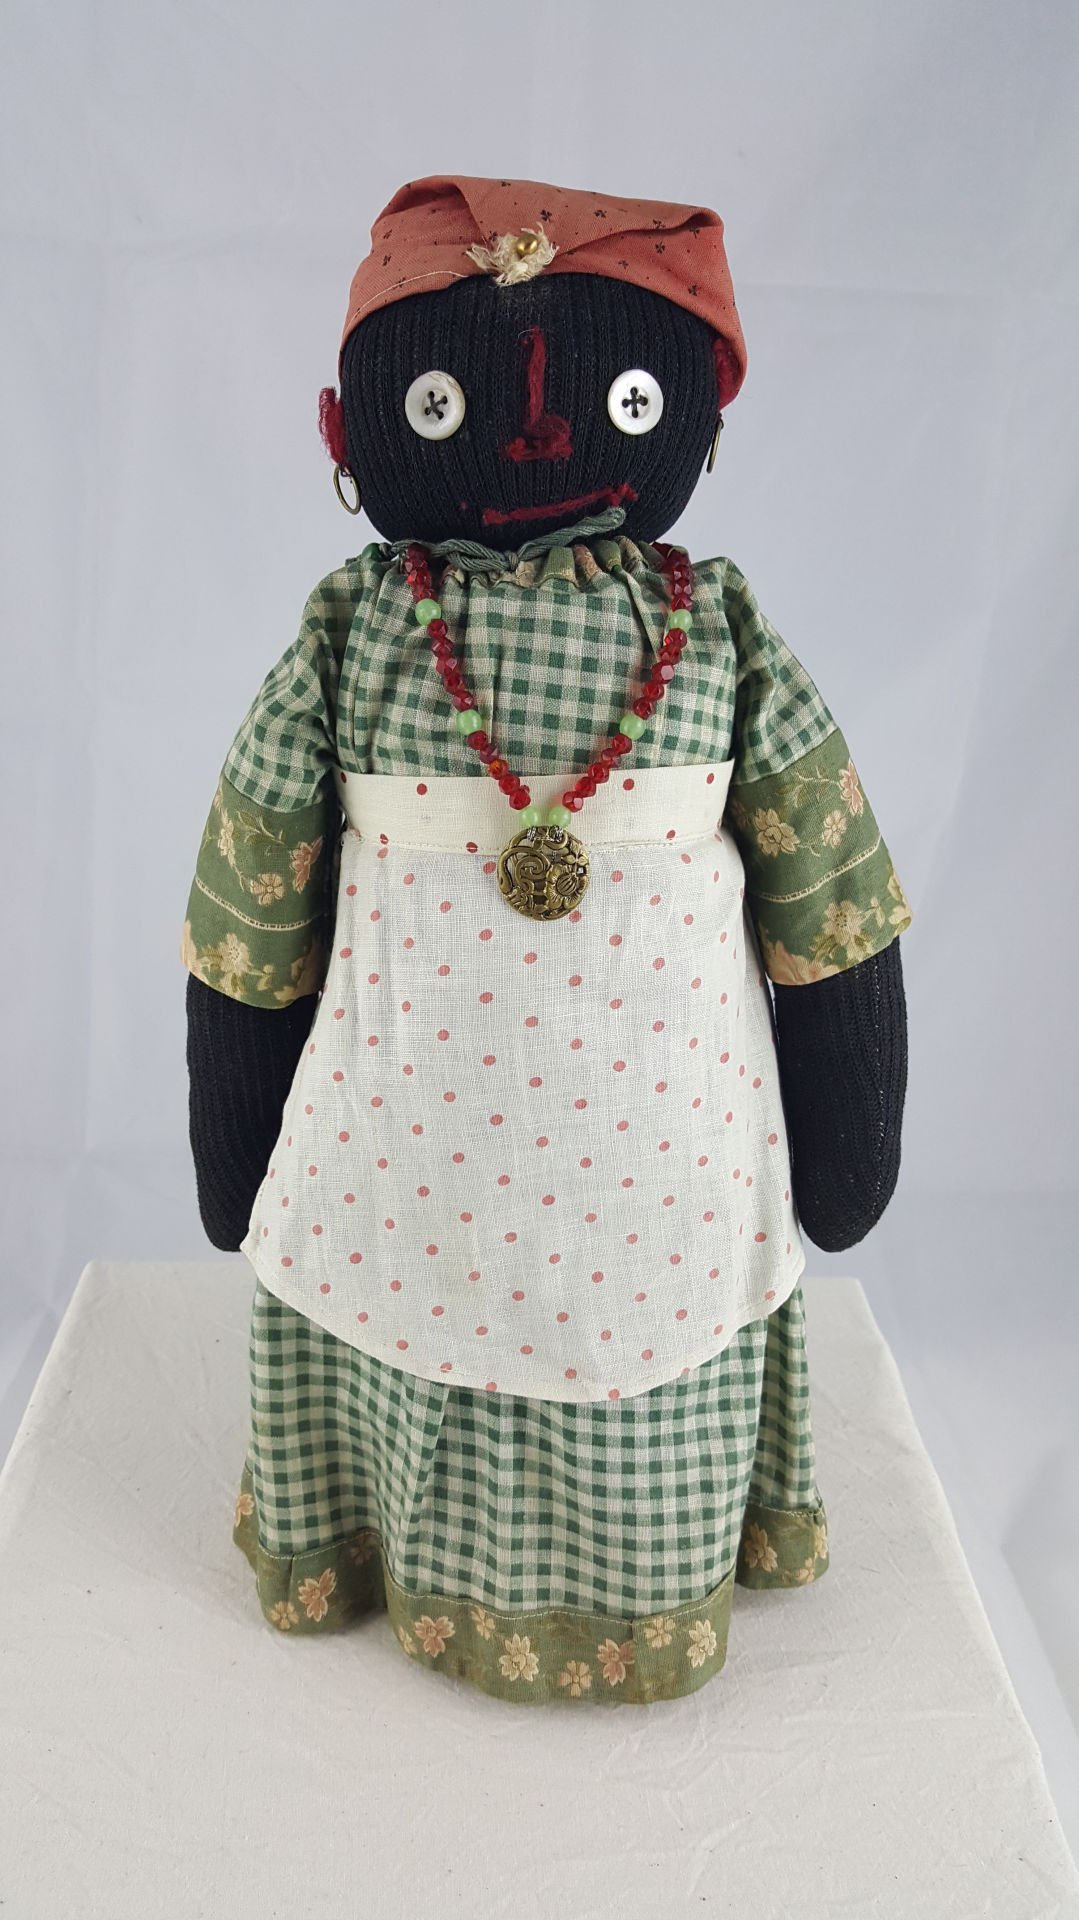 Things That Matter: Alice Ginn's doll